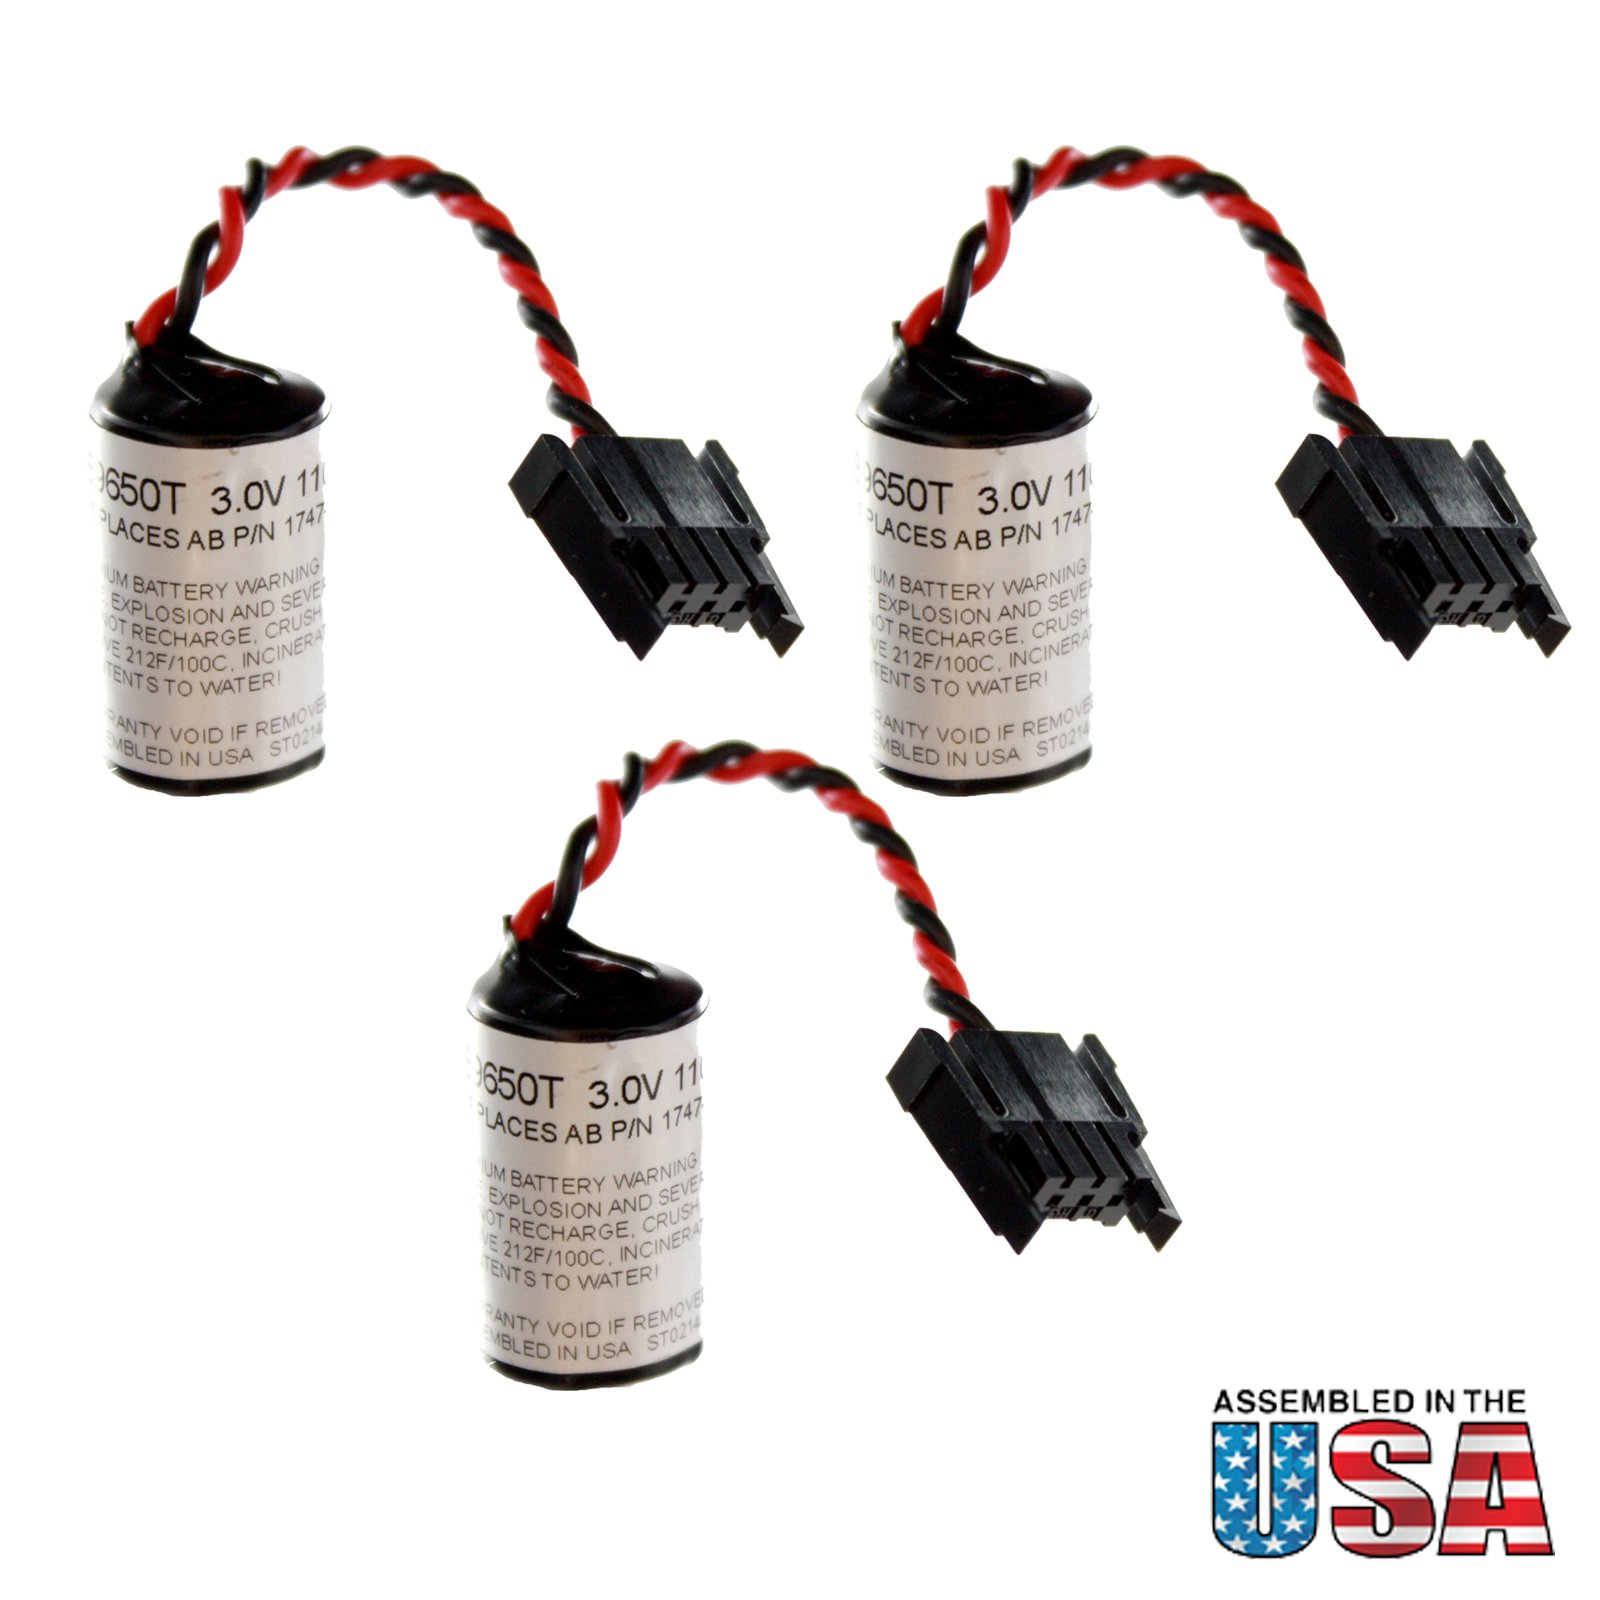 (3-Pack) 3V Lithium PLC Battery Replaces 41762, 41763, 41764, SLC5/01, SLC500, 1747BA, 1769-BA, 1769-BA2, 41761, 1769-L23-QBFC1B, 1769-L23E-QB1B, 1769-L23E-QBFC1B, 1769-L32E, 1769-L35E, COMP109 by Exell Battery